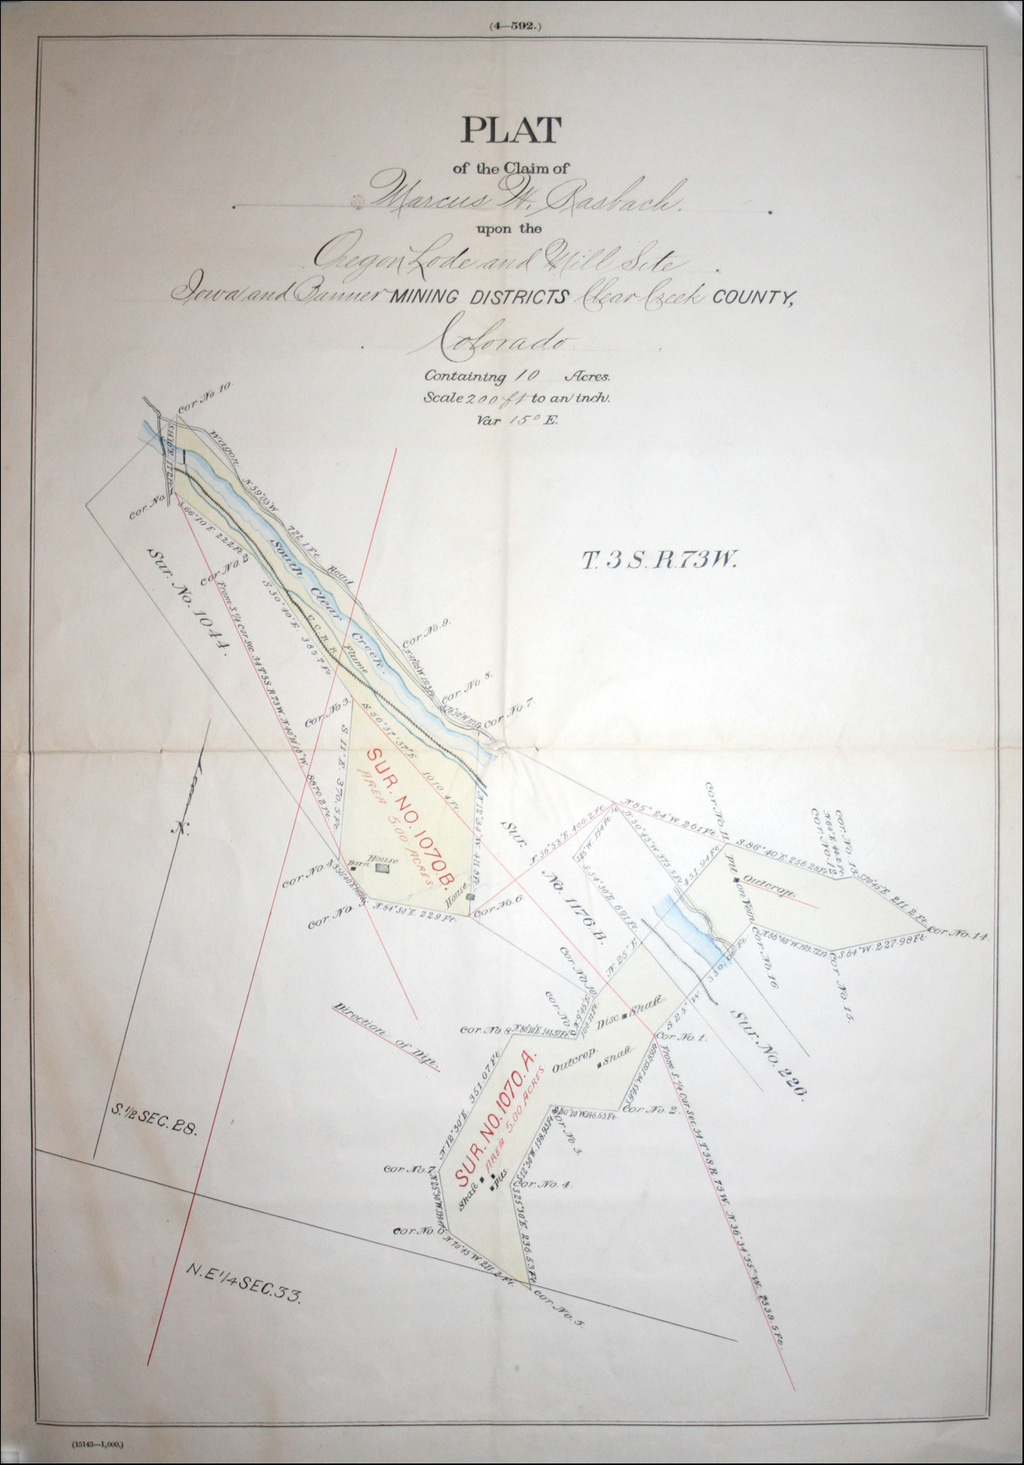 Plat of the Claim of Marcus W. Rasbach upon the Oregon Lode and Mill Site, Iowa and Banner Mining Districts Clear Creek County, Colorado By General Land Office